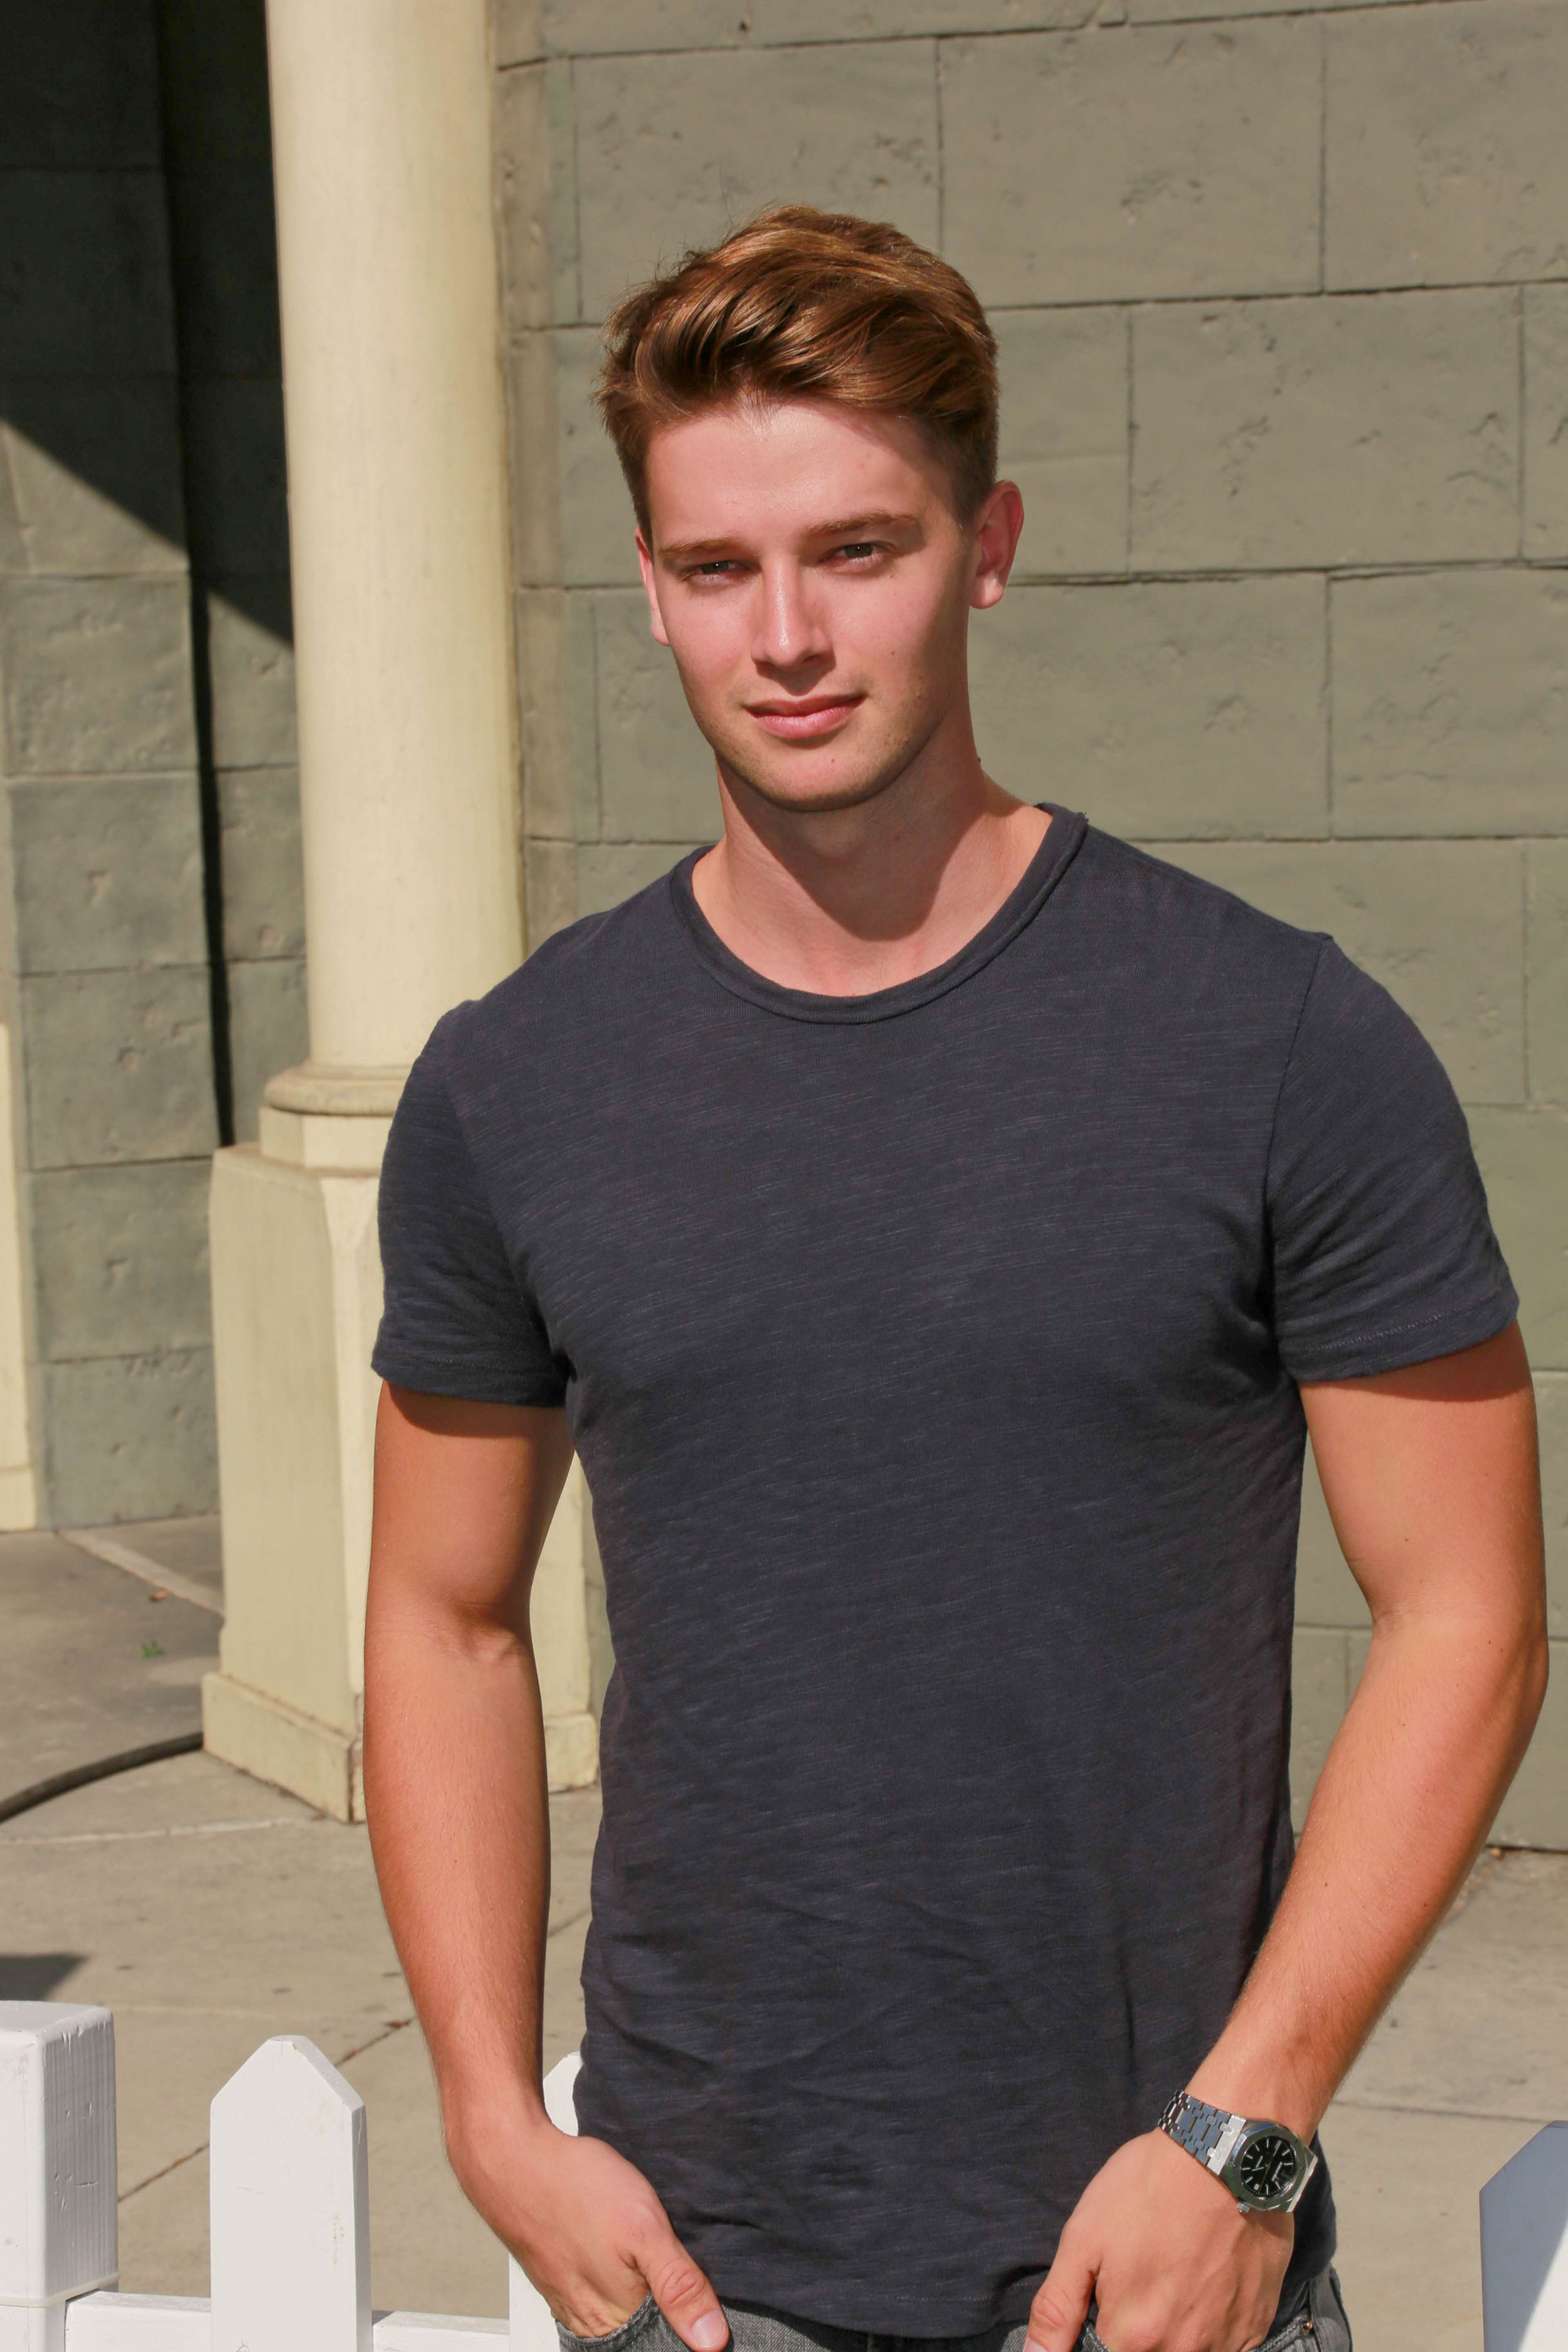 Iphone Wallpaper Resolution Patrick Schwarzenegger Wallpapers High Quality Download Free